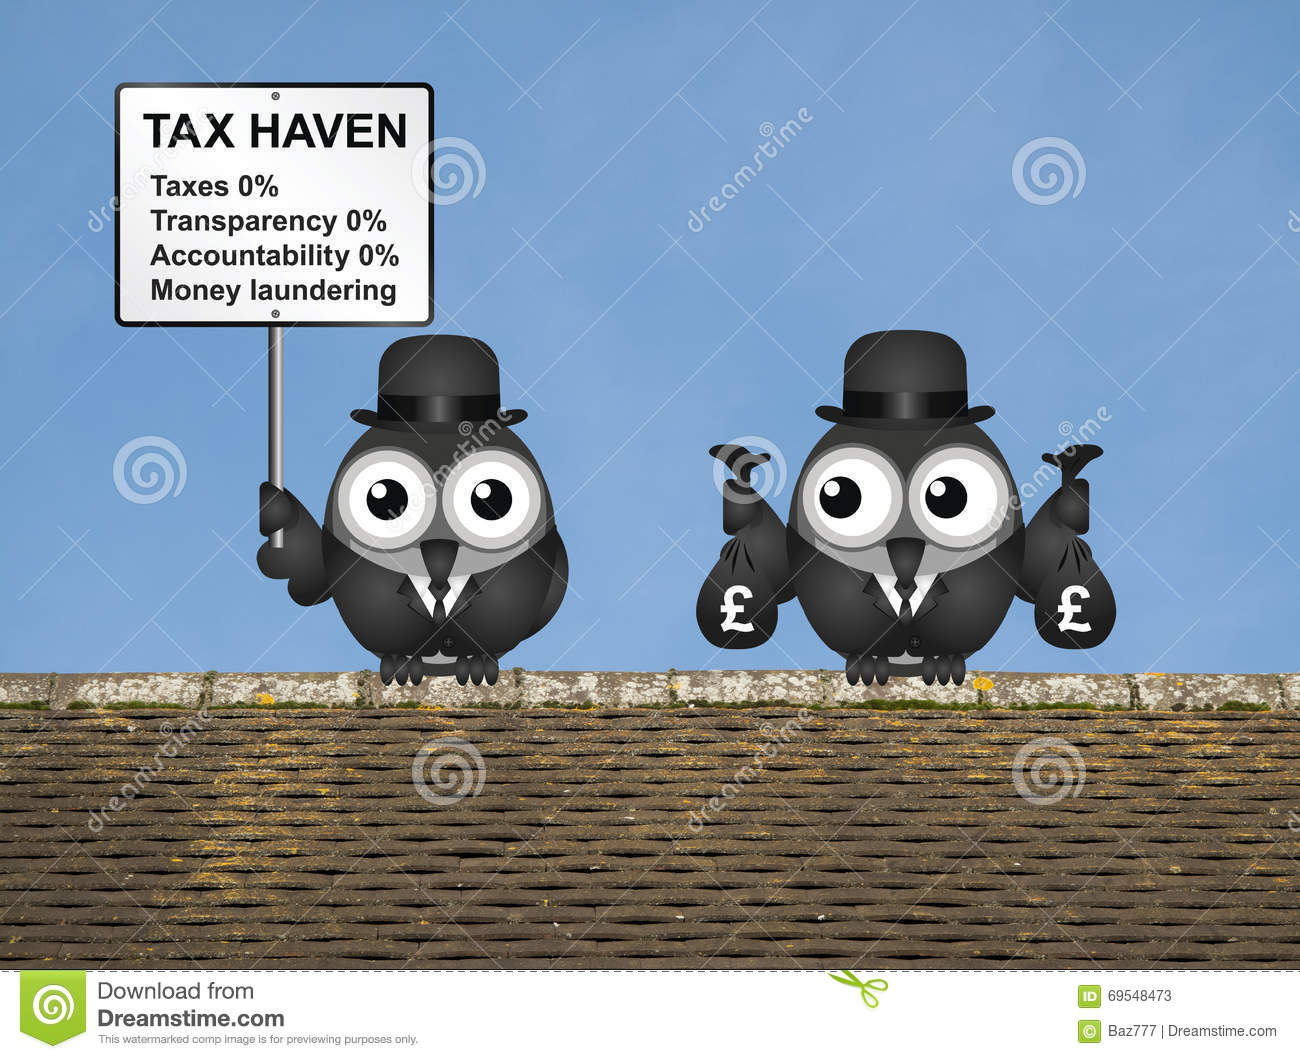 Tax Haven.